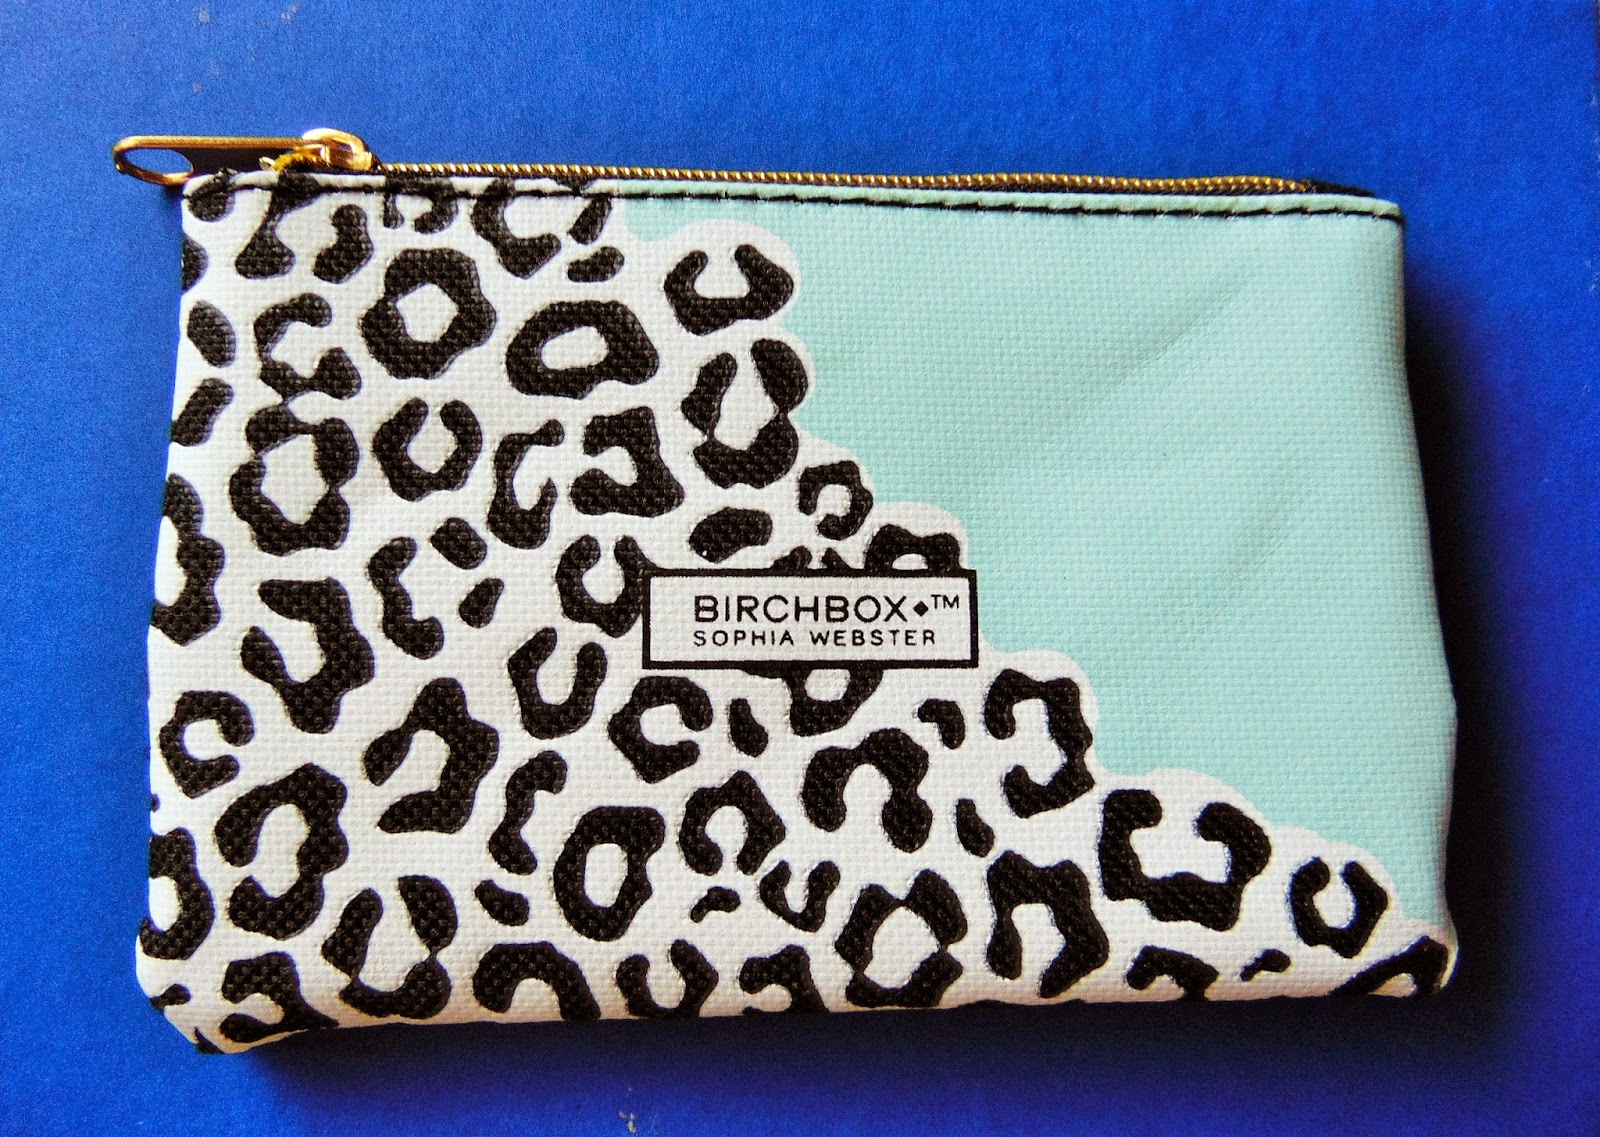 Birchbox opening and review Sophia Webster edition purse